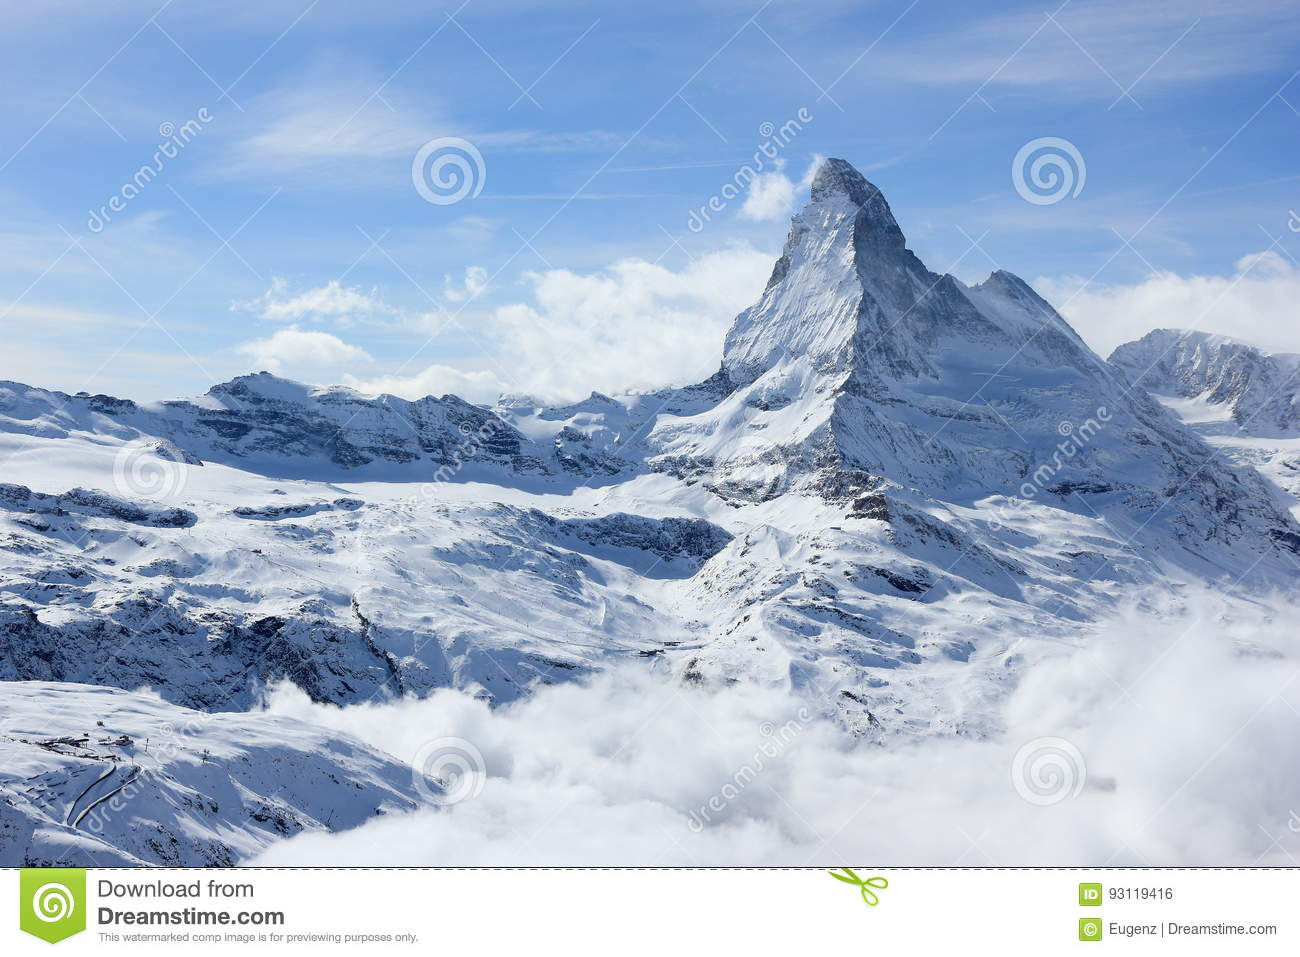 View of the Matterhorn from the Rothorn summit station. Swiss Alps, Valais, Switzerland.